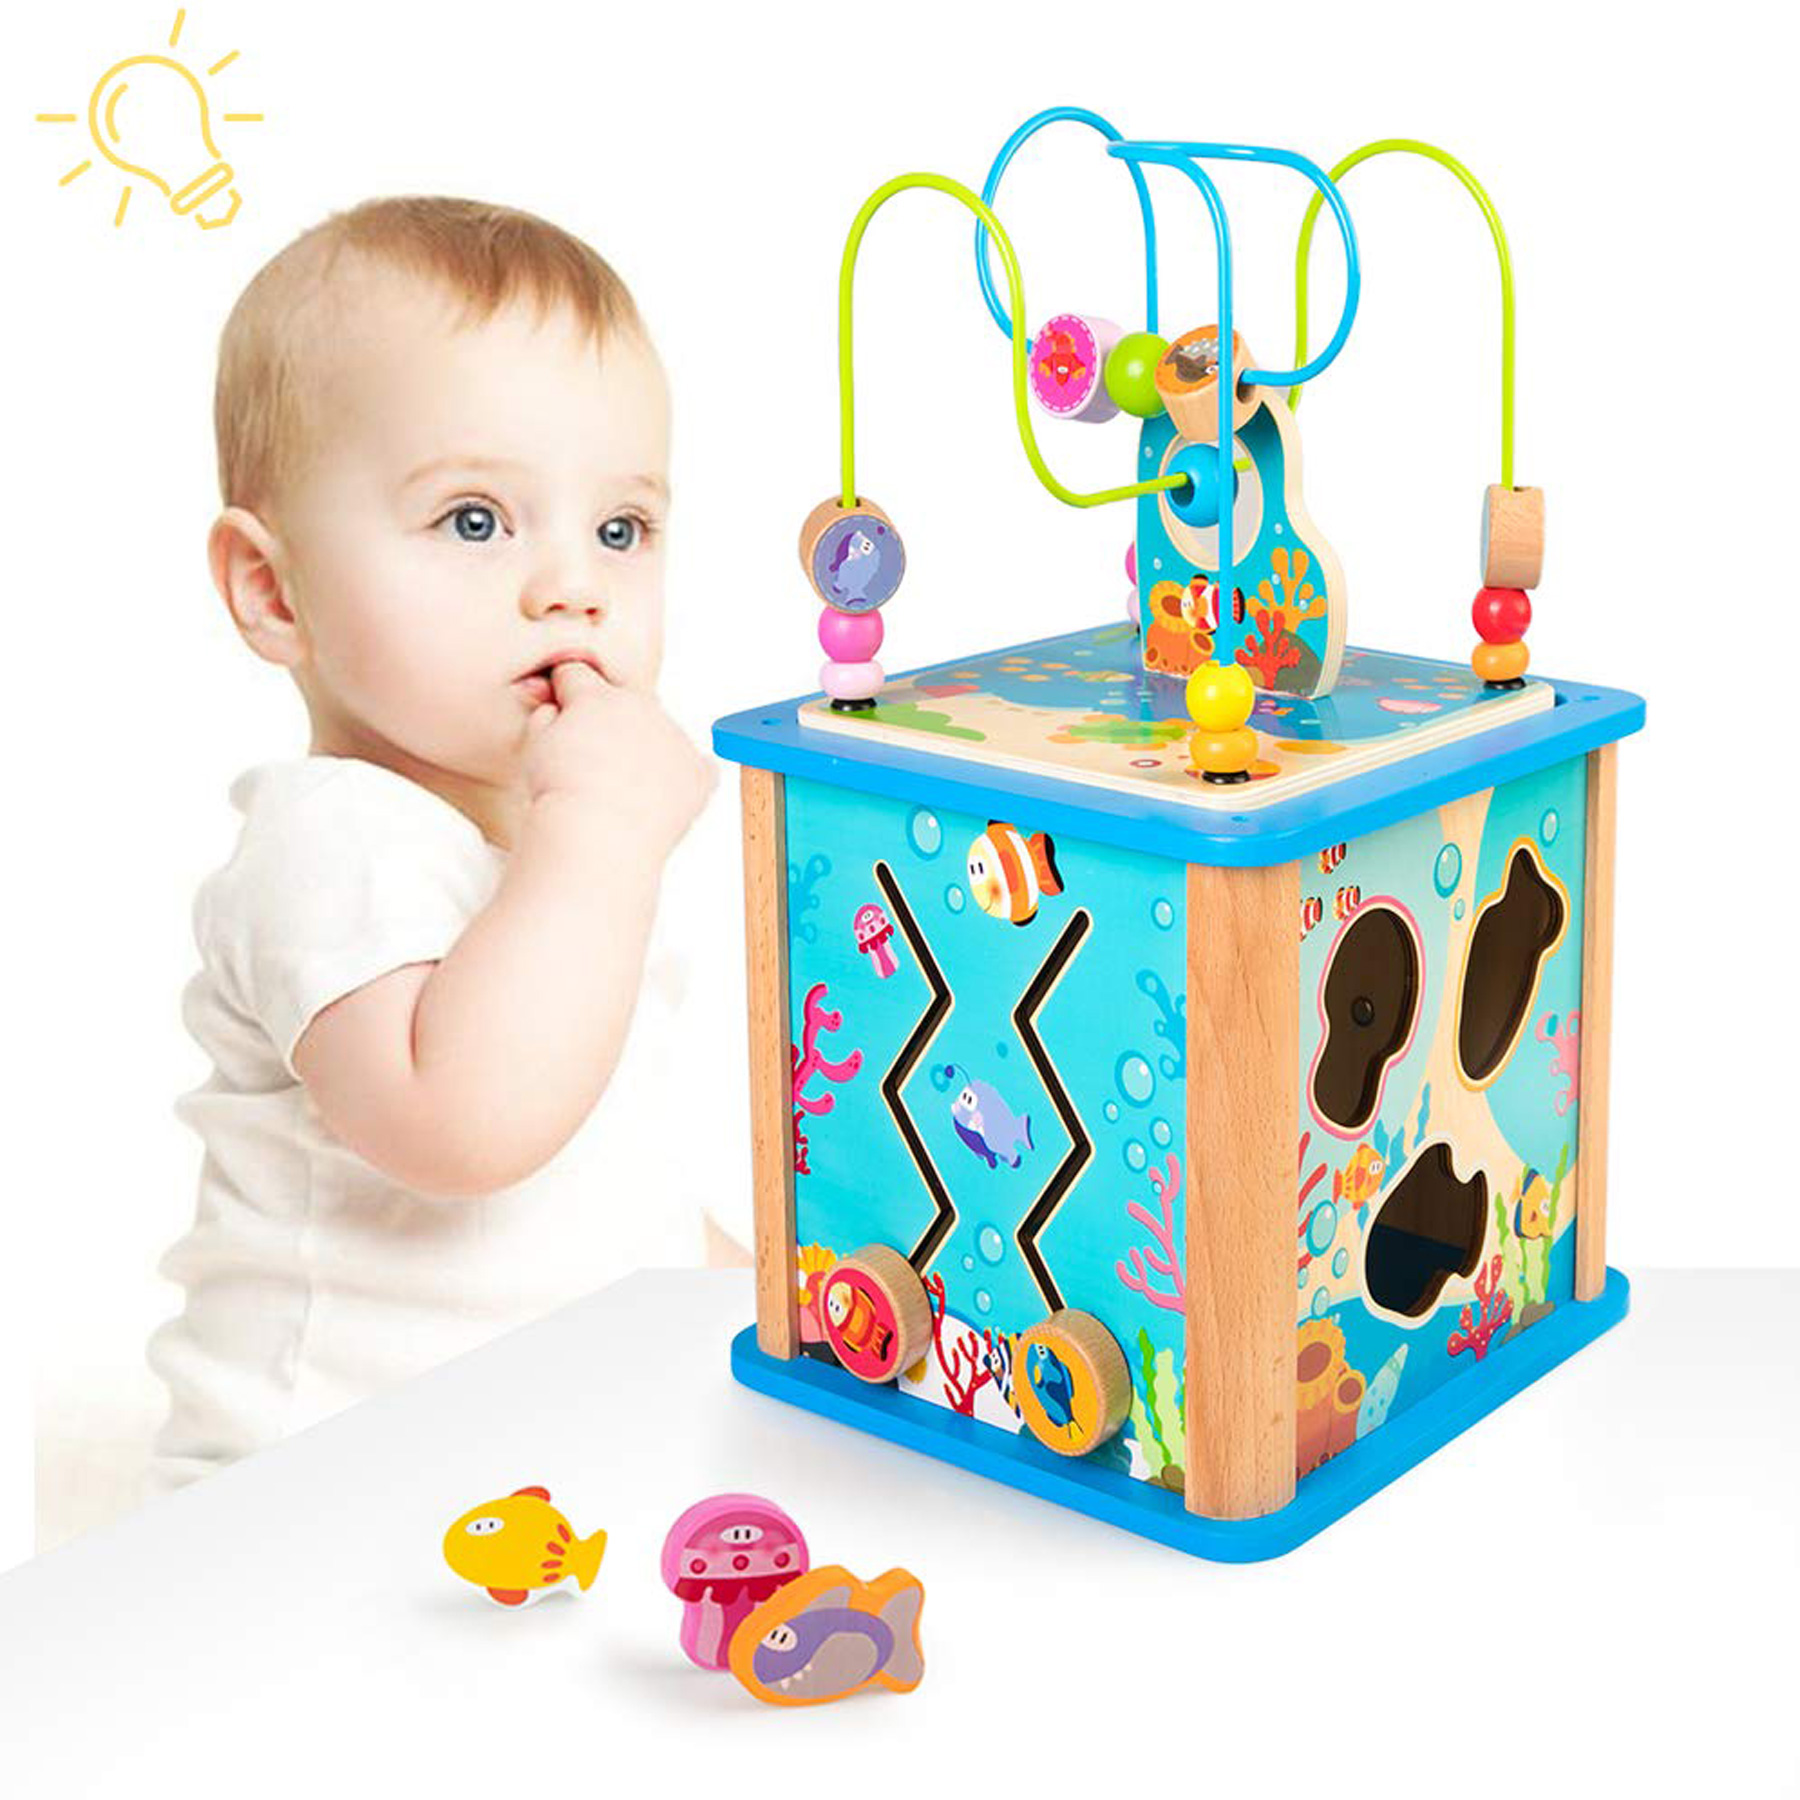 50% off Wooden Learning Cube Toy - Deal Hunting Babe